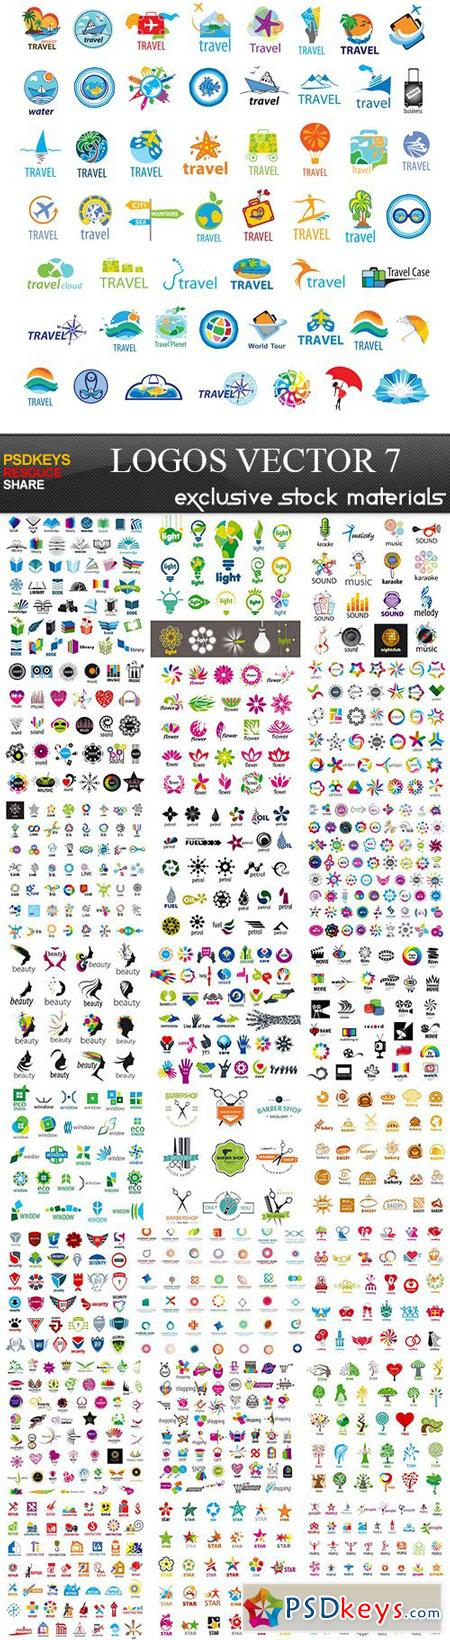 Logos - Vector Collection 7, 25xEPS » Free Download